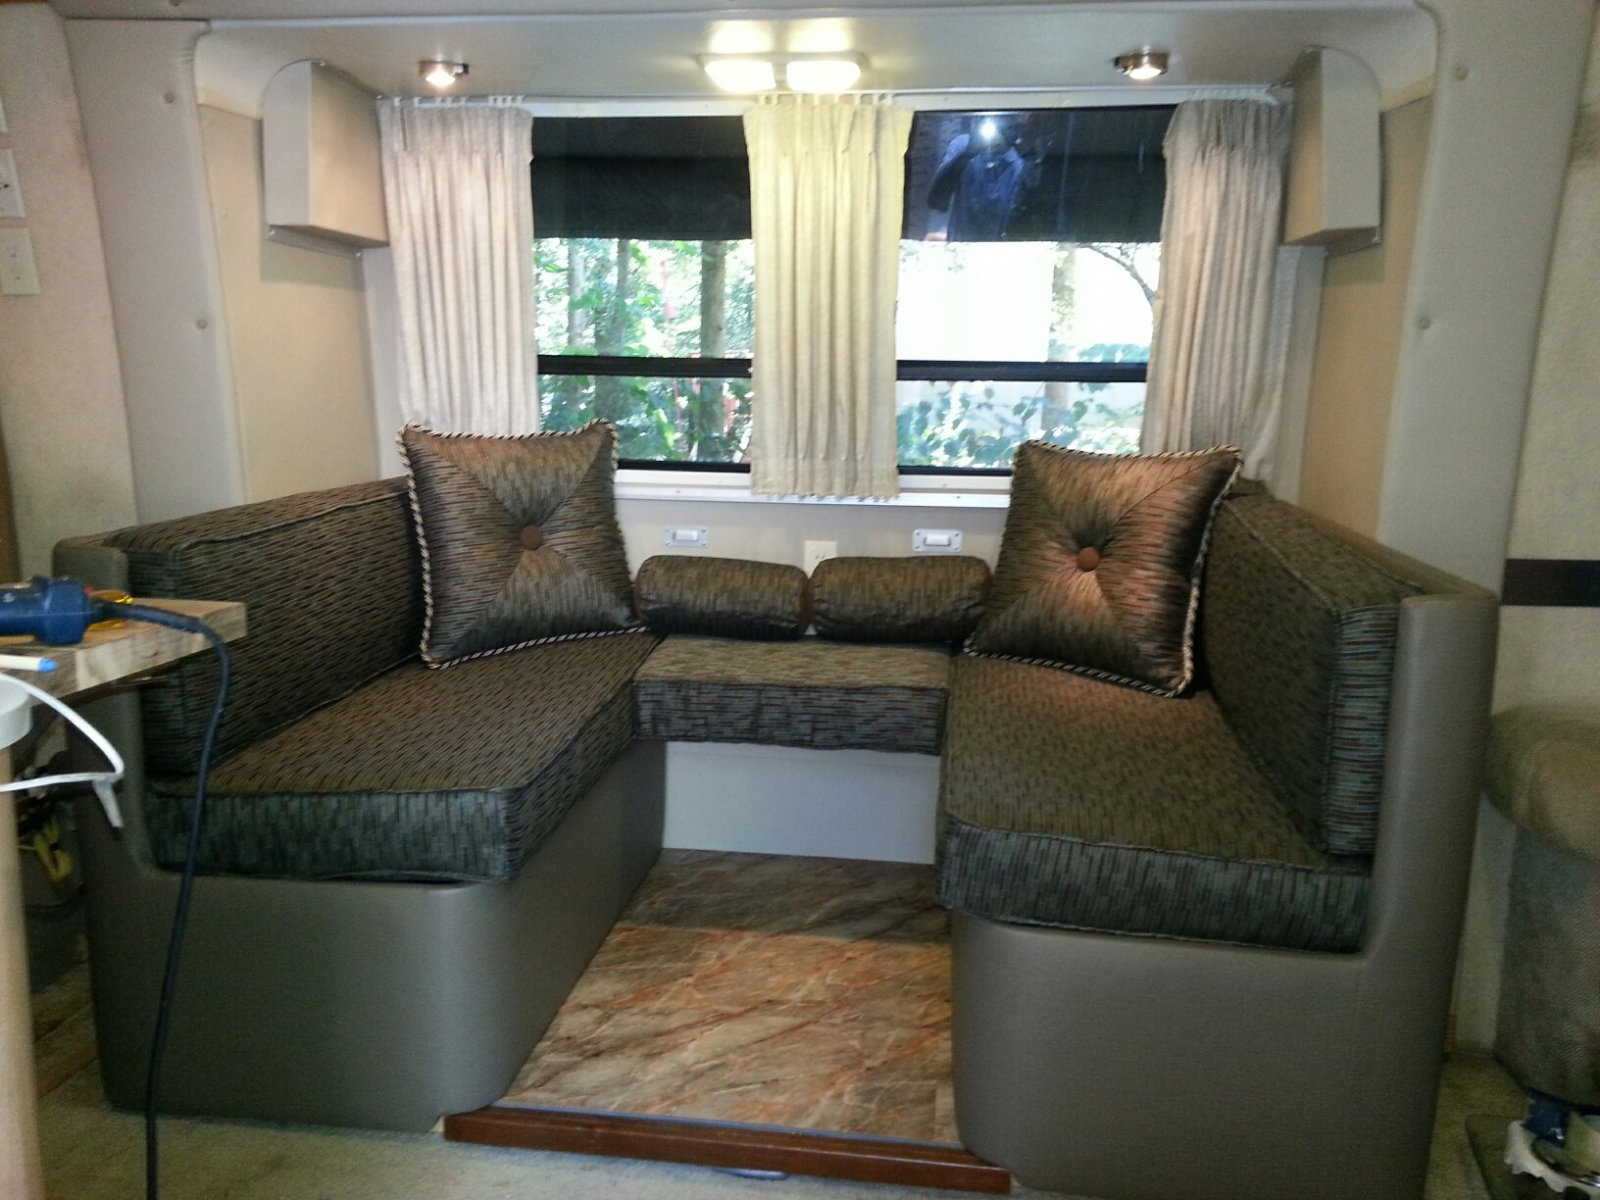 Fabric Walls replacement - Airstream Forums